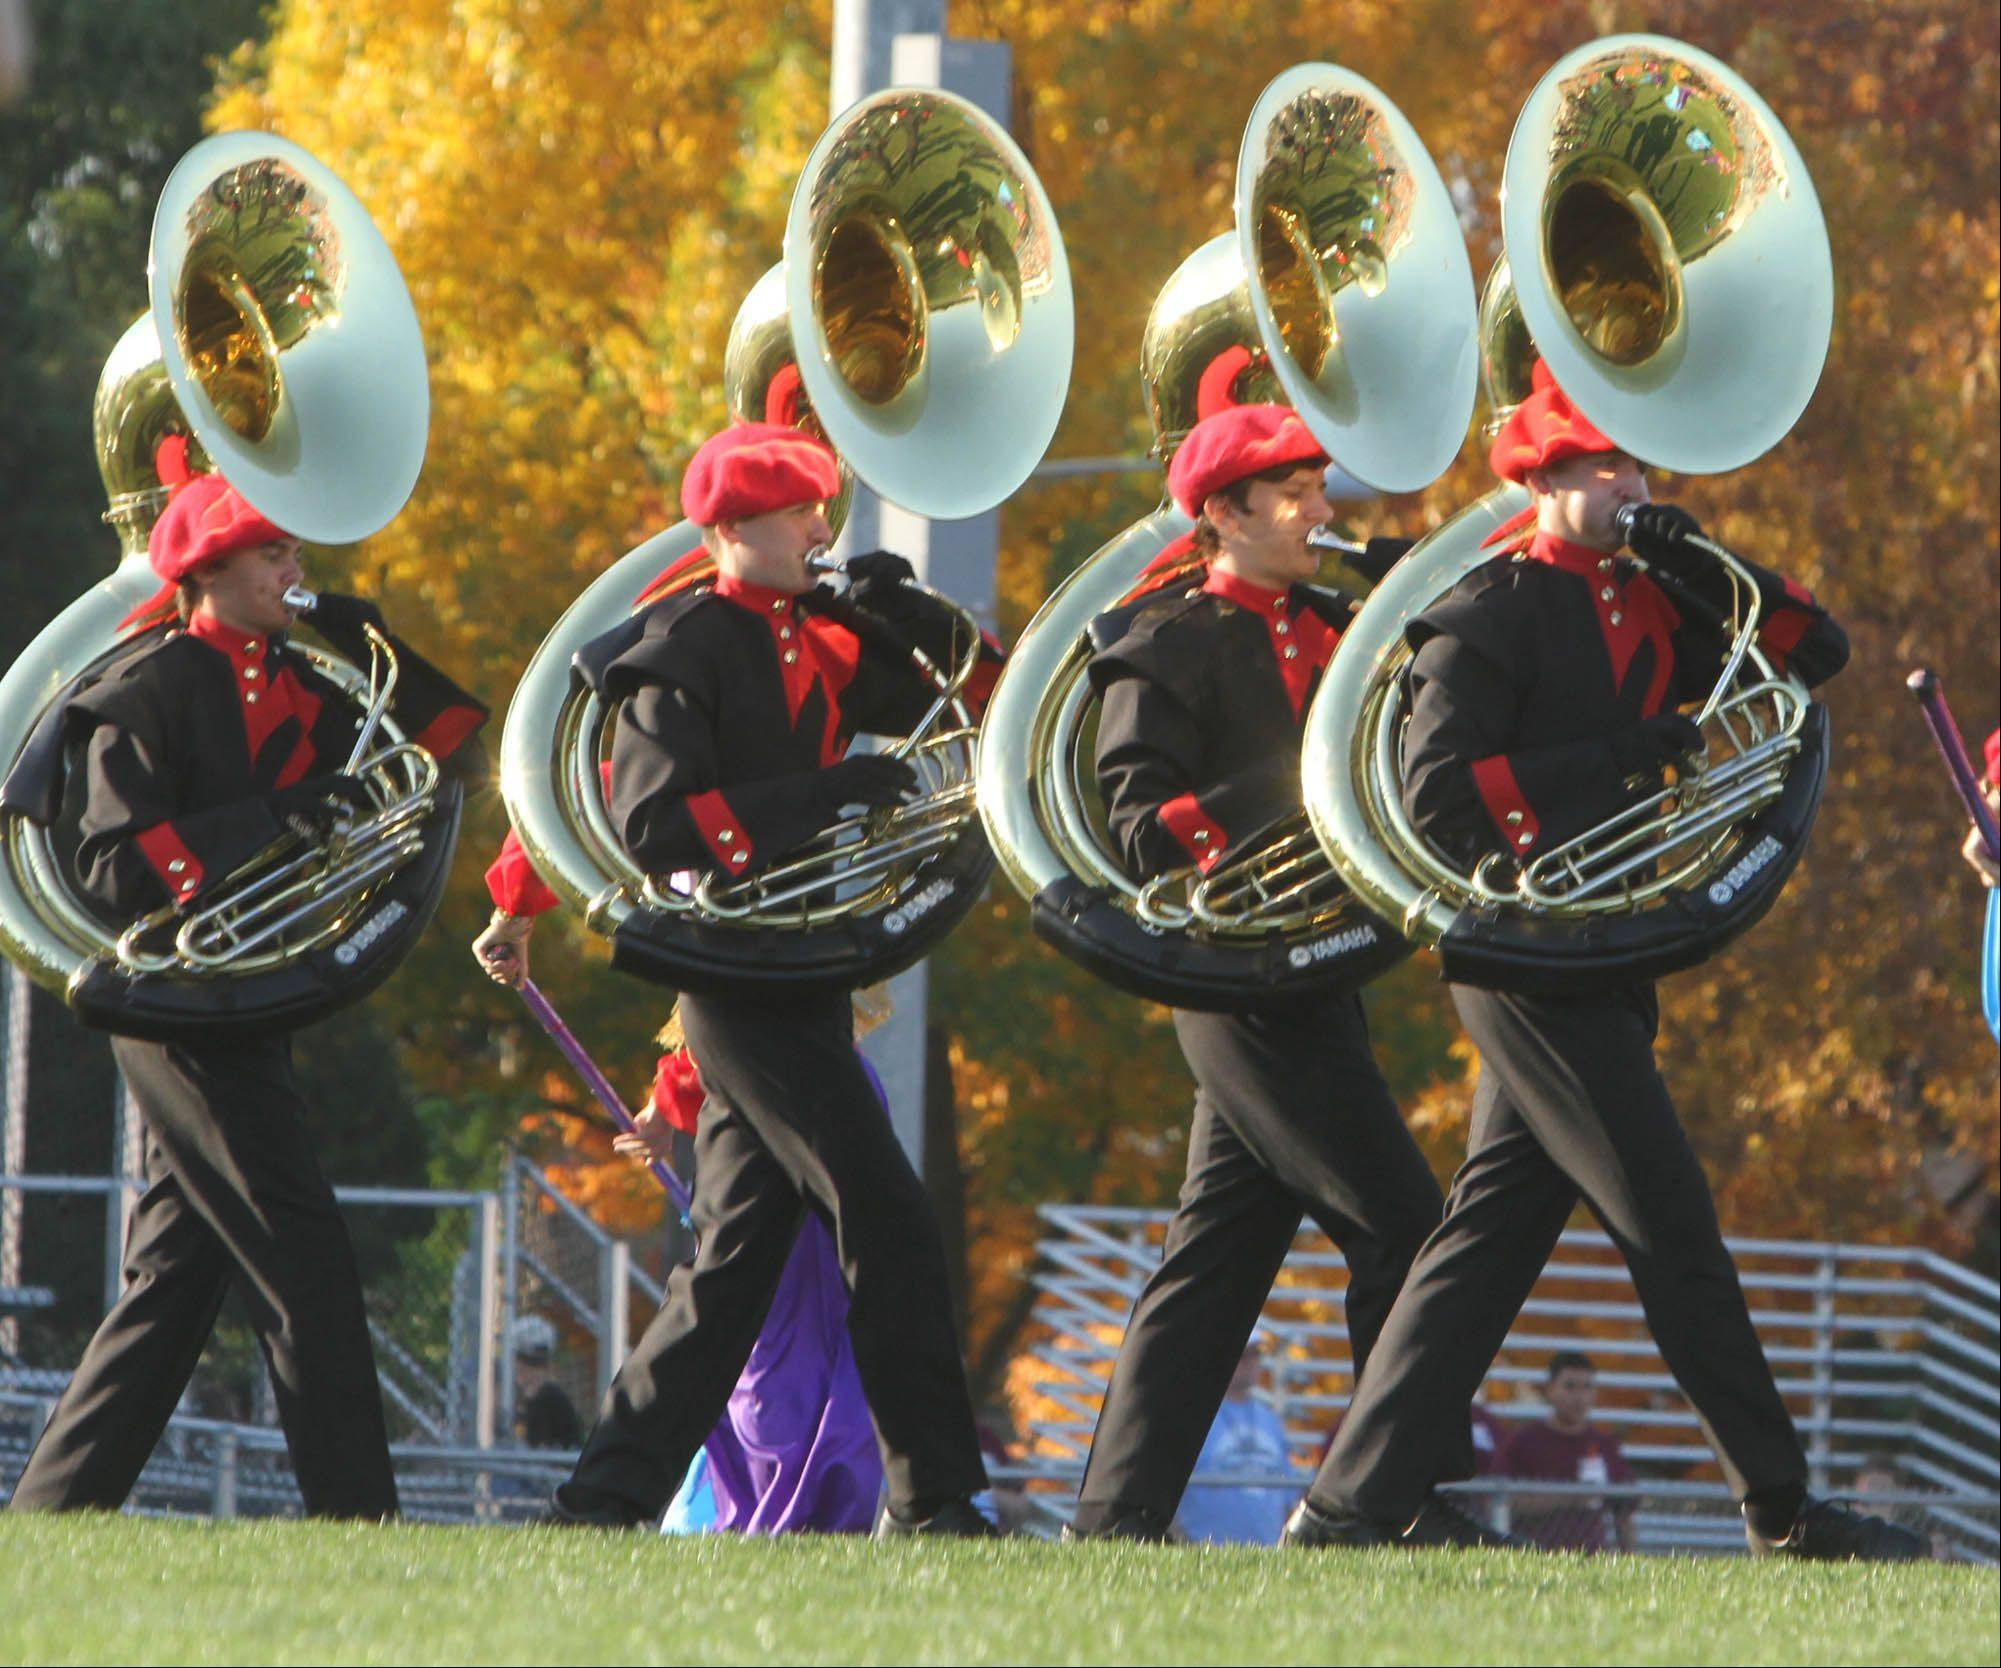 Batavia High School's Marching Bulldogs perform at the Knight of Champions marching band competition at Prospect High School on Oct. 8.